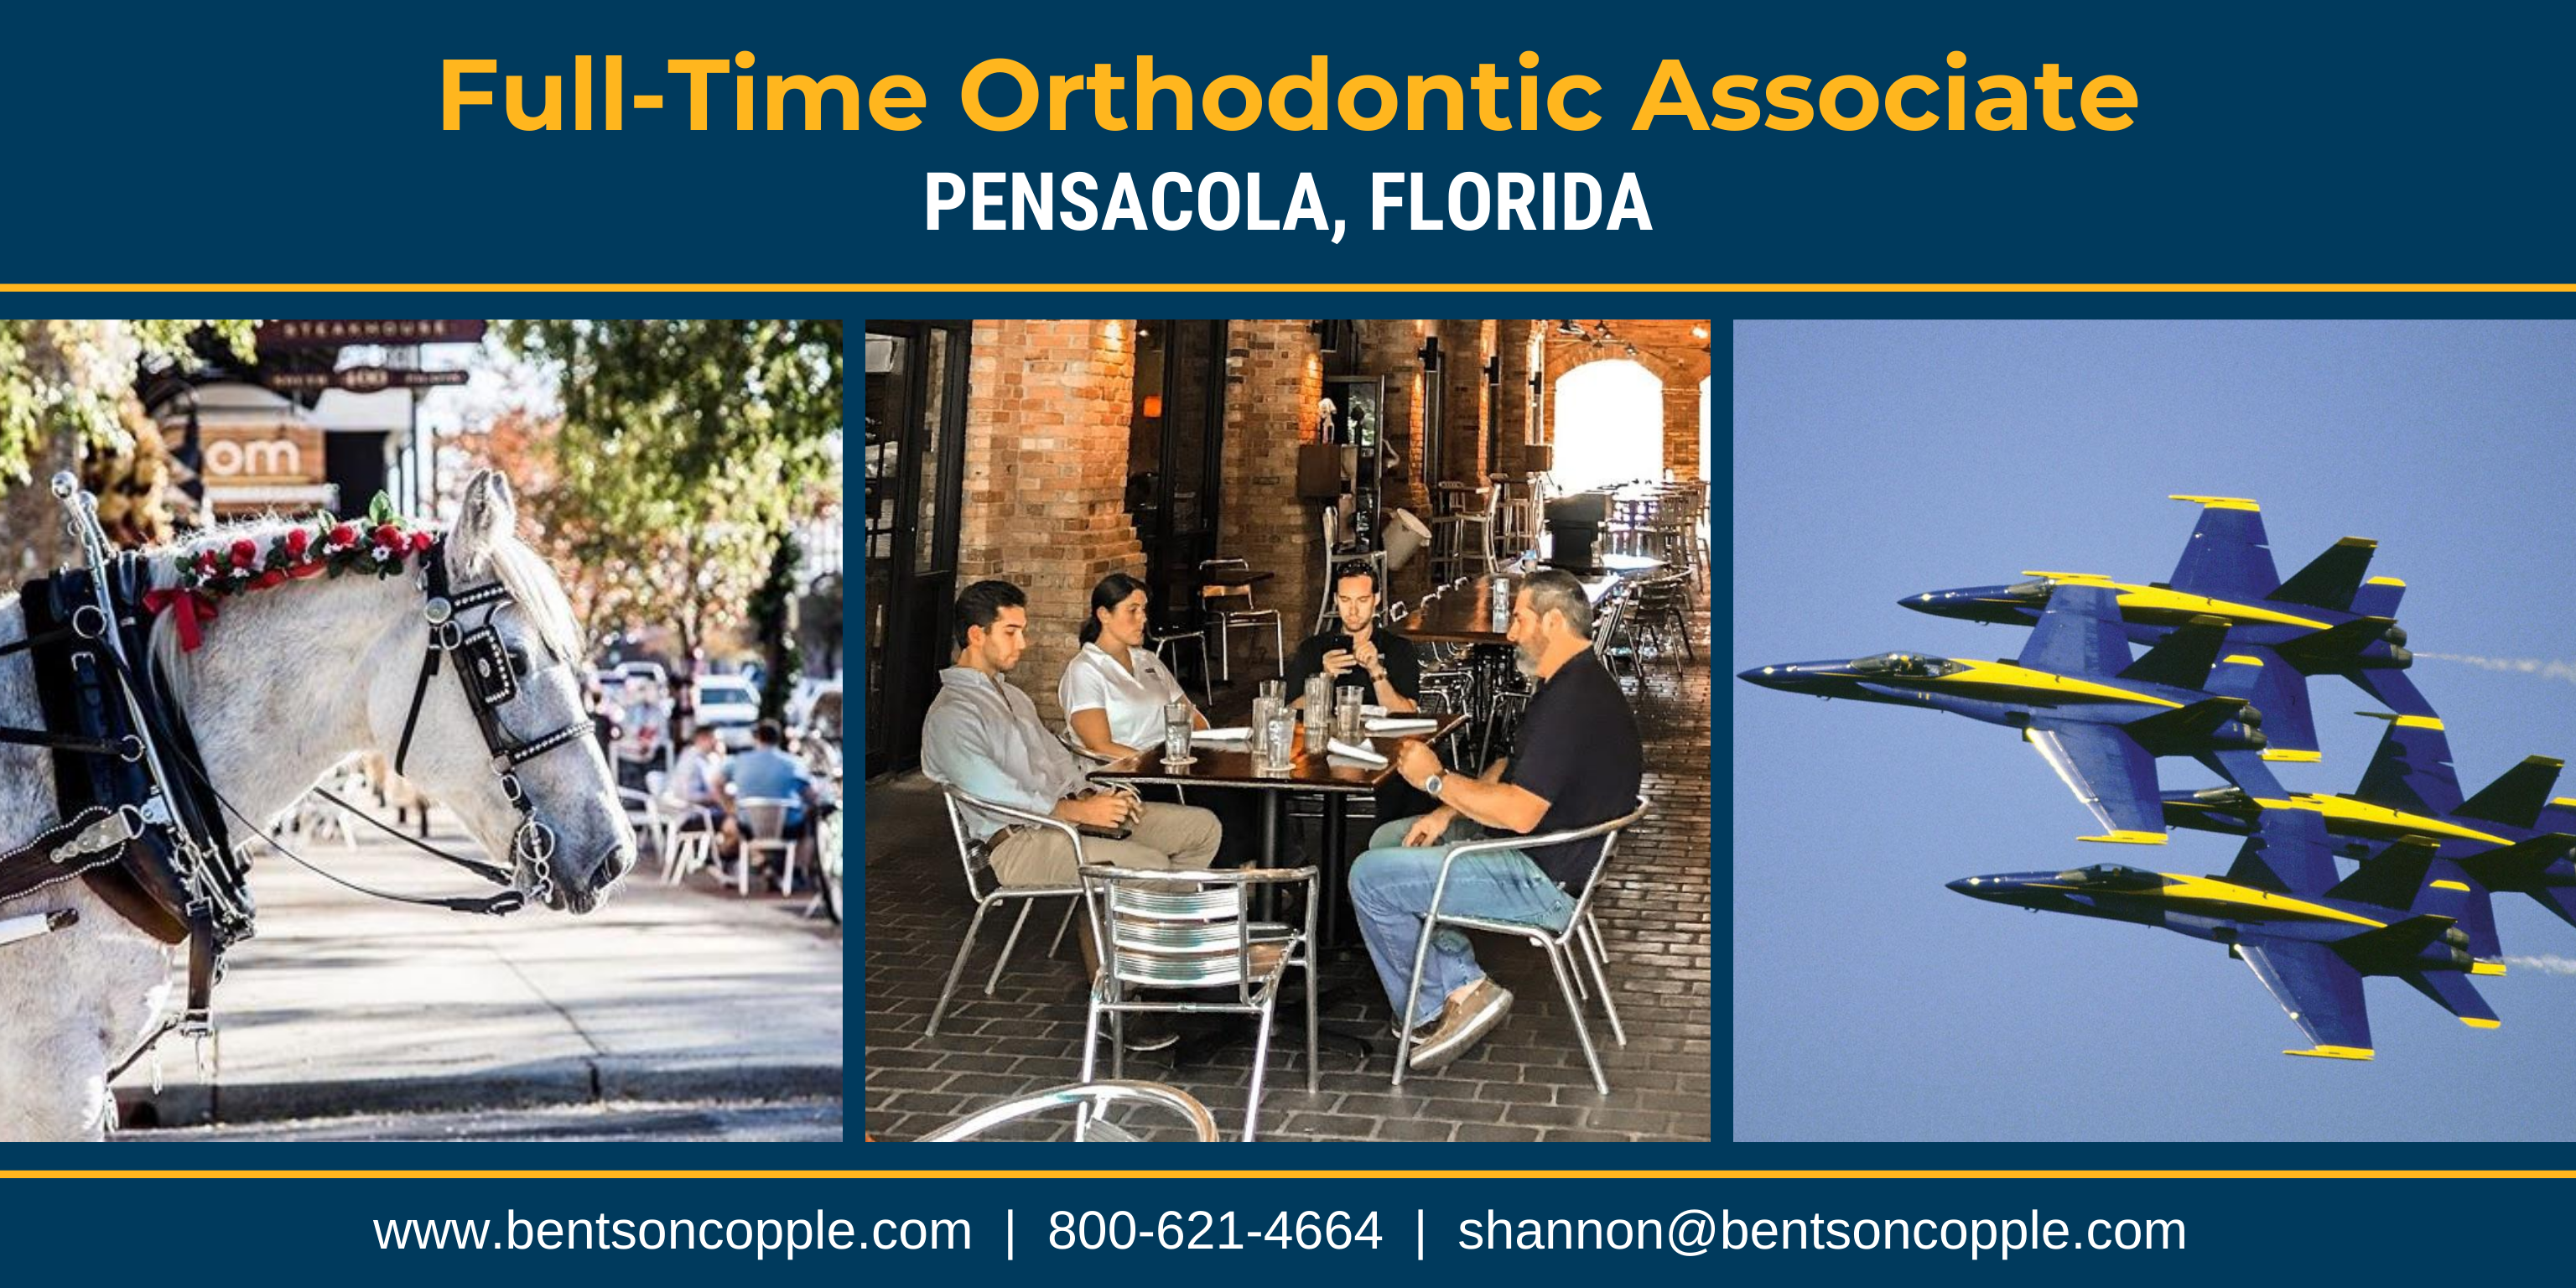 Full-Time Orthodontic Associate - Pensacola, Florida